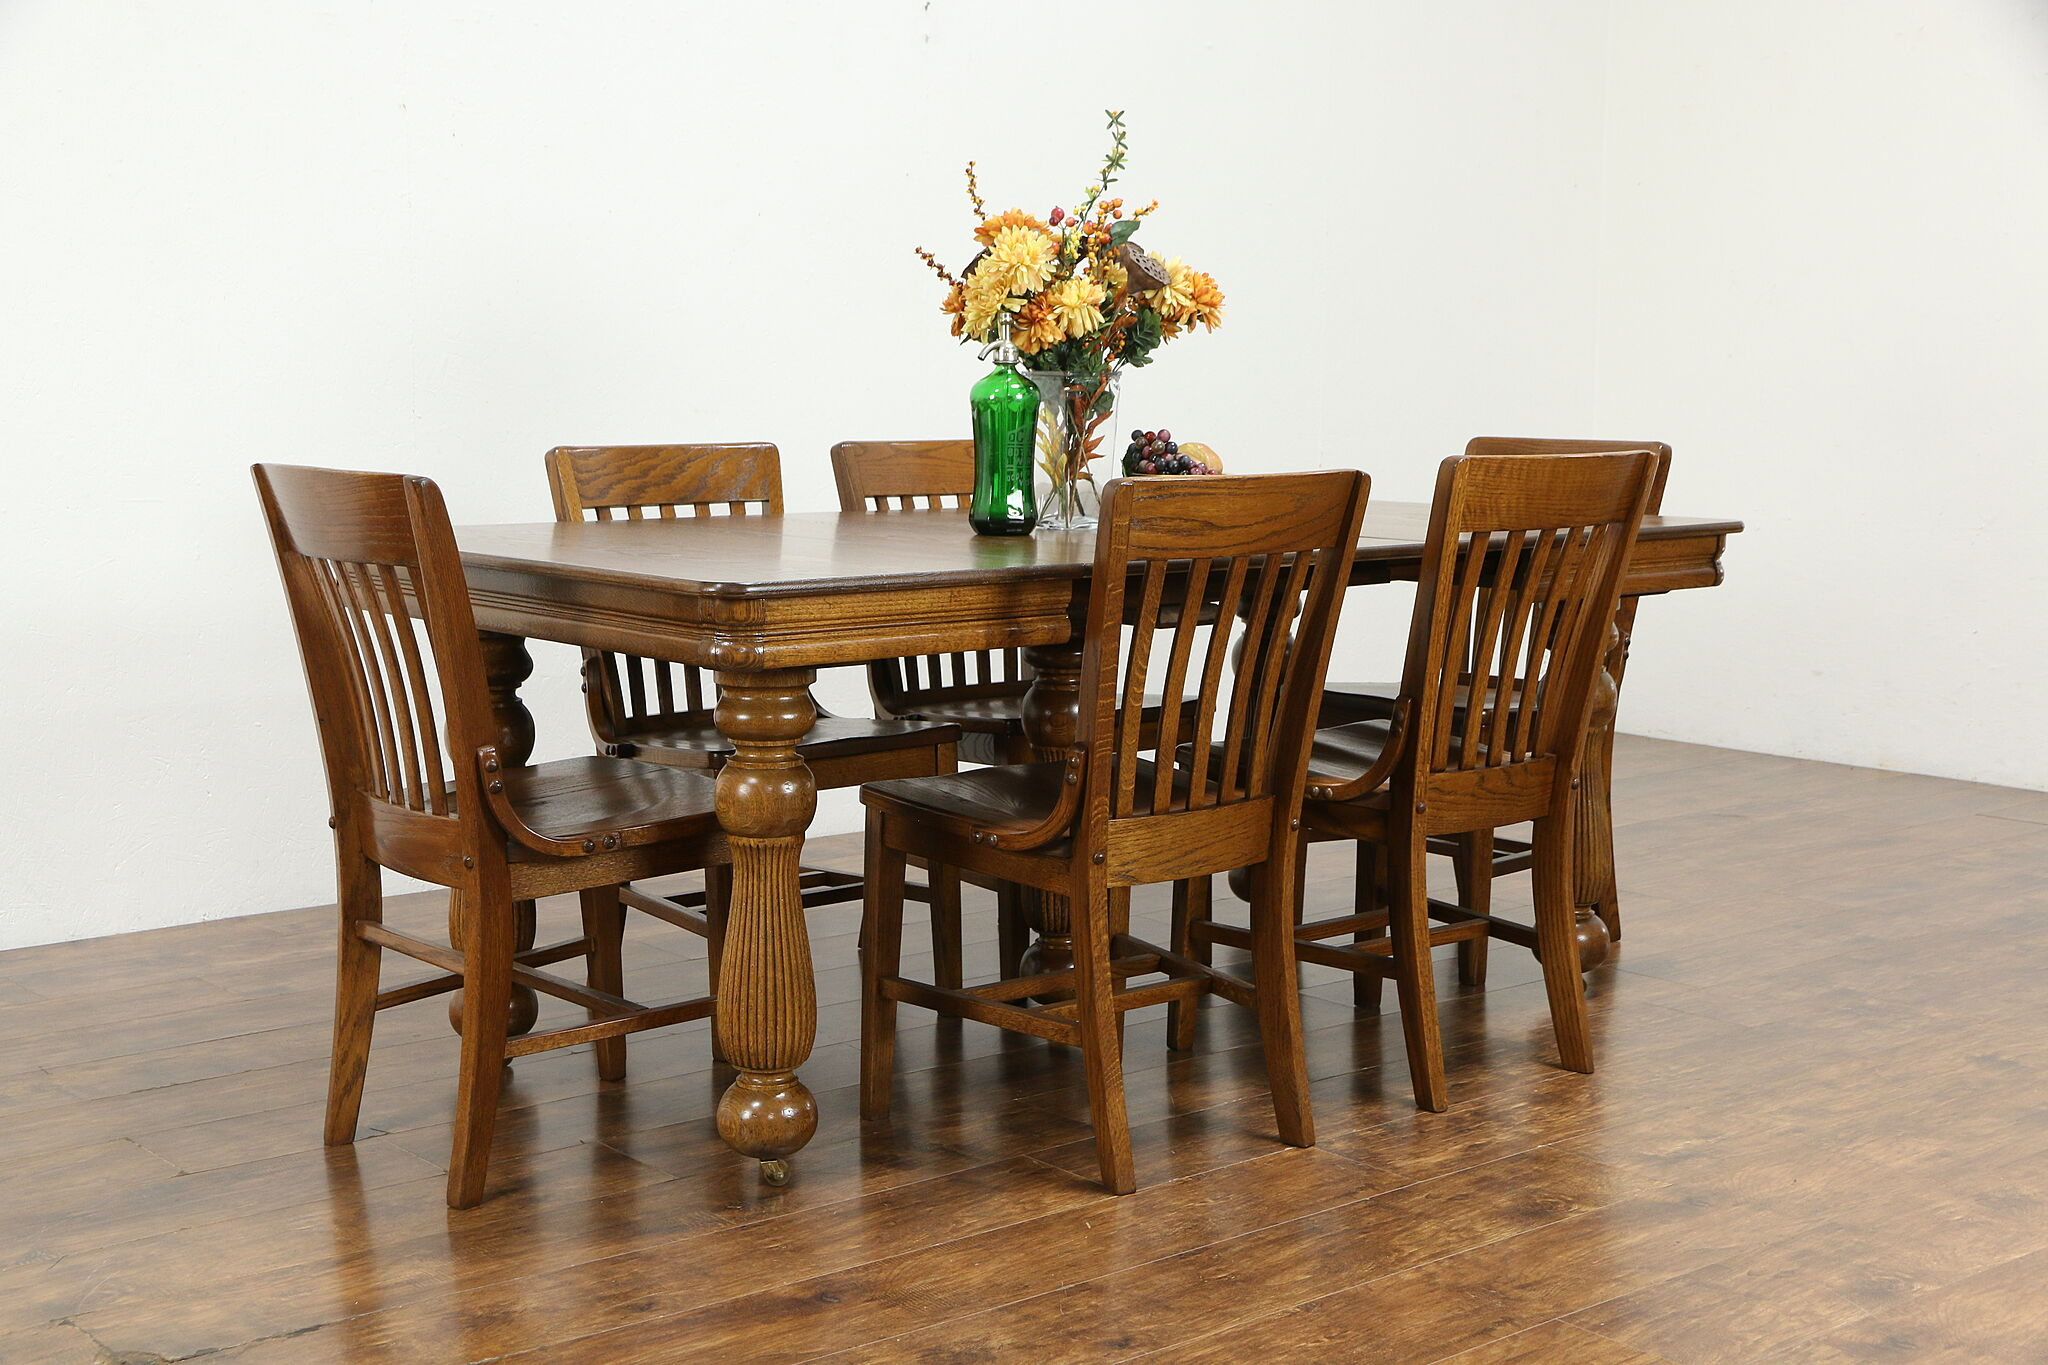 Victorian Antique Square Oak Farmhouse Dining Table 4 Leaves 5 Legs 34132 Harp Gallery Antiques Furniture